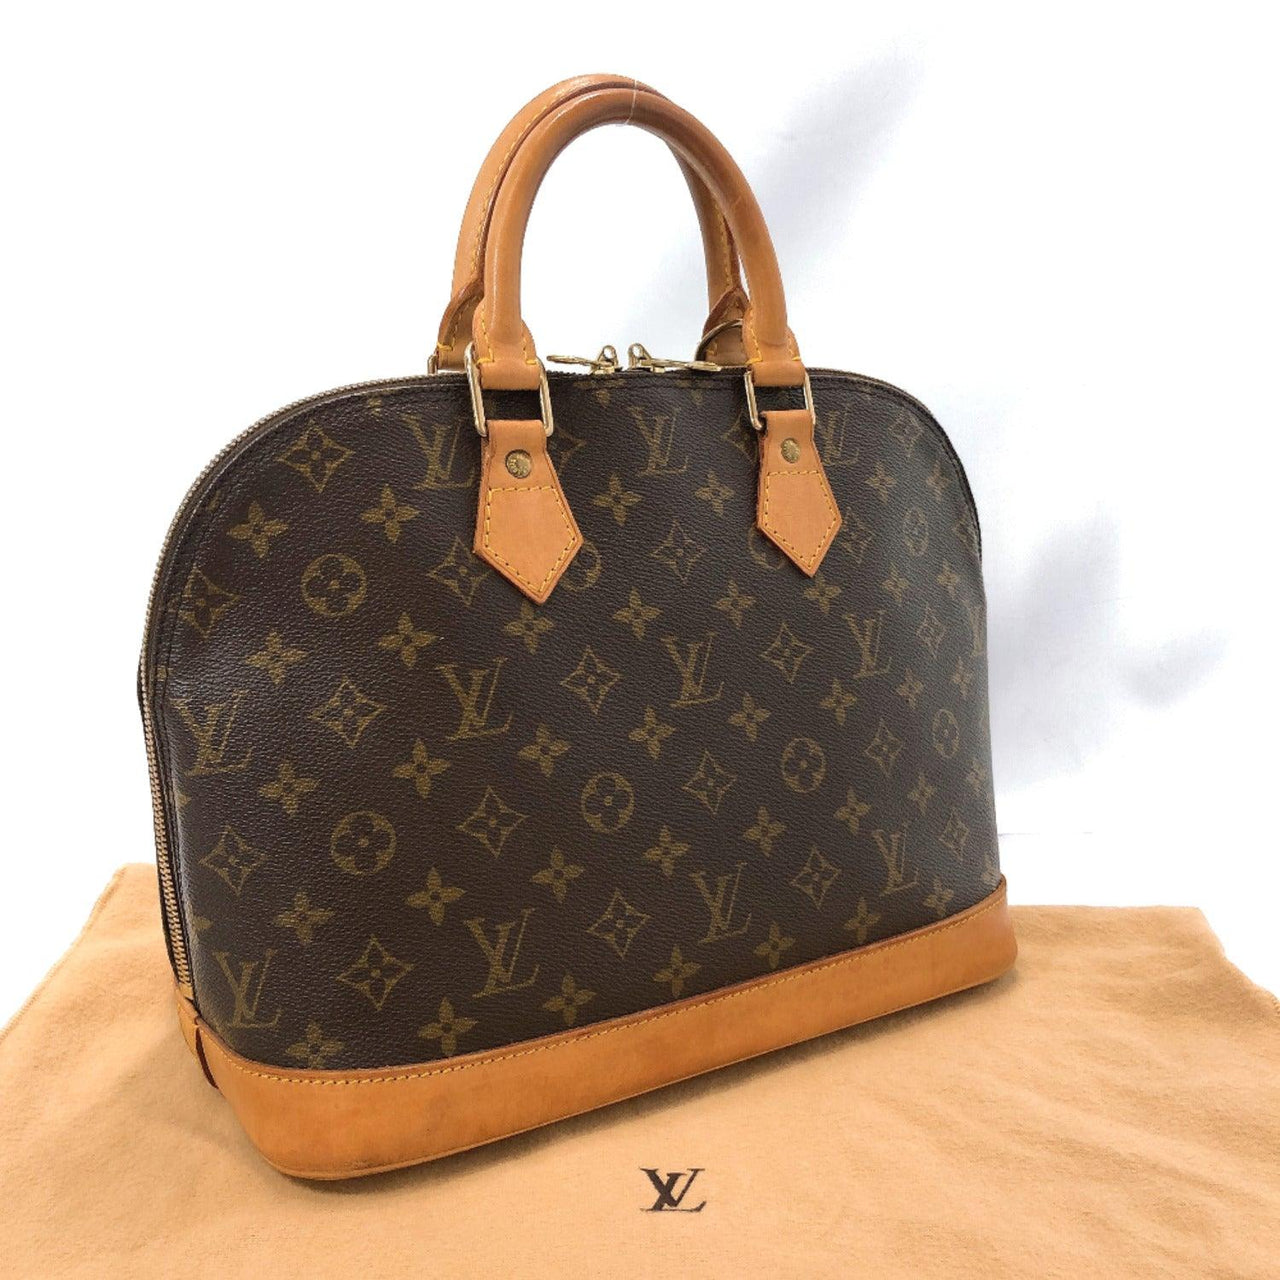 LOUIS VUITTON Handbag M51130 Alma PM Monogram canvas Brown Women Used